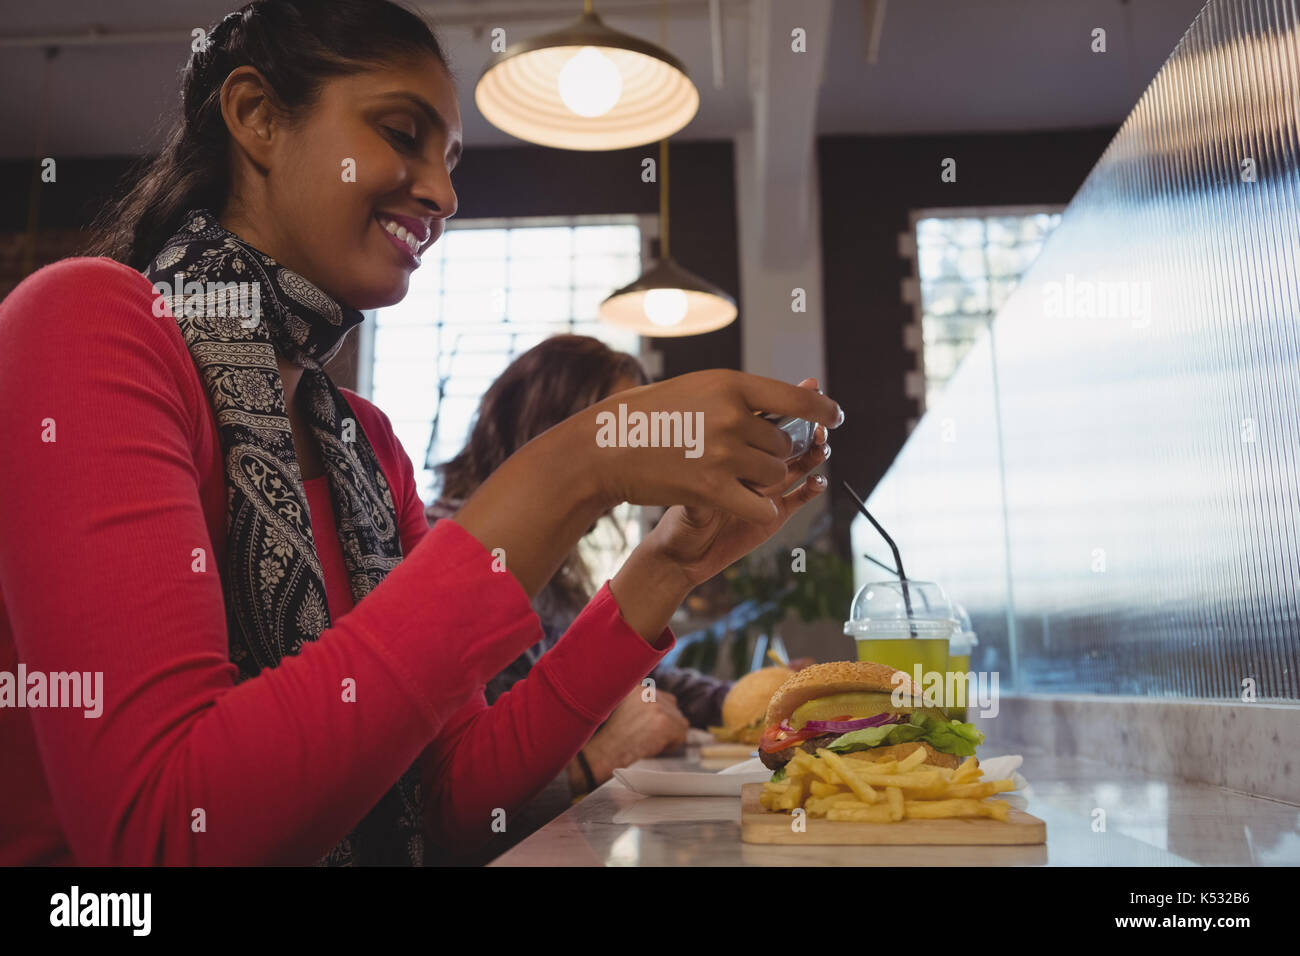 Young woman photographing French fries at counter in cafe - Stock Image